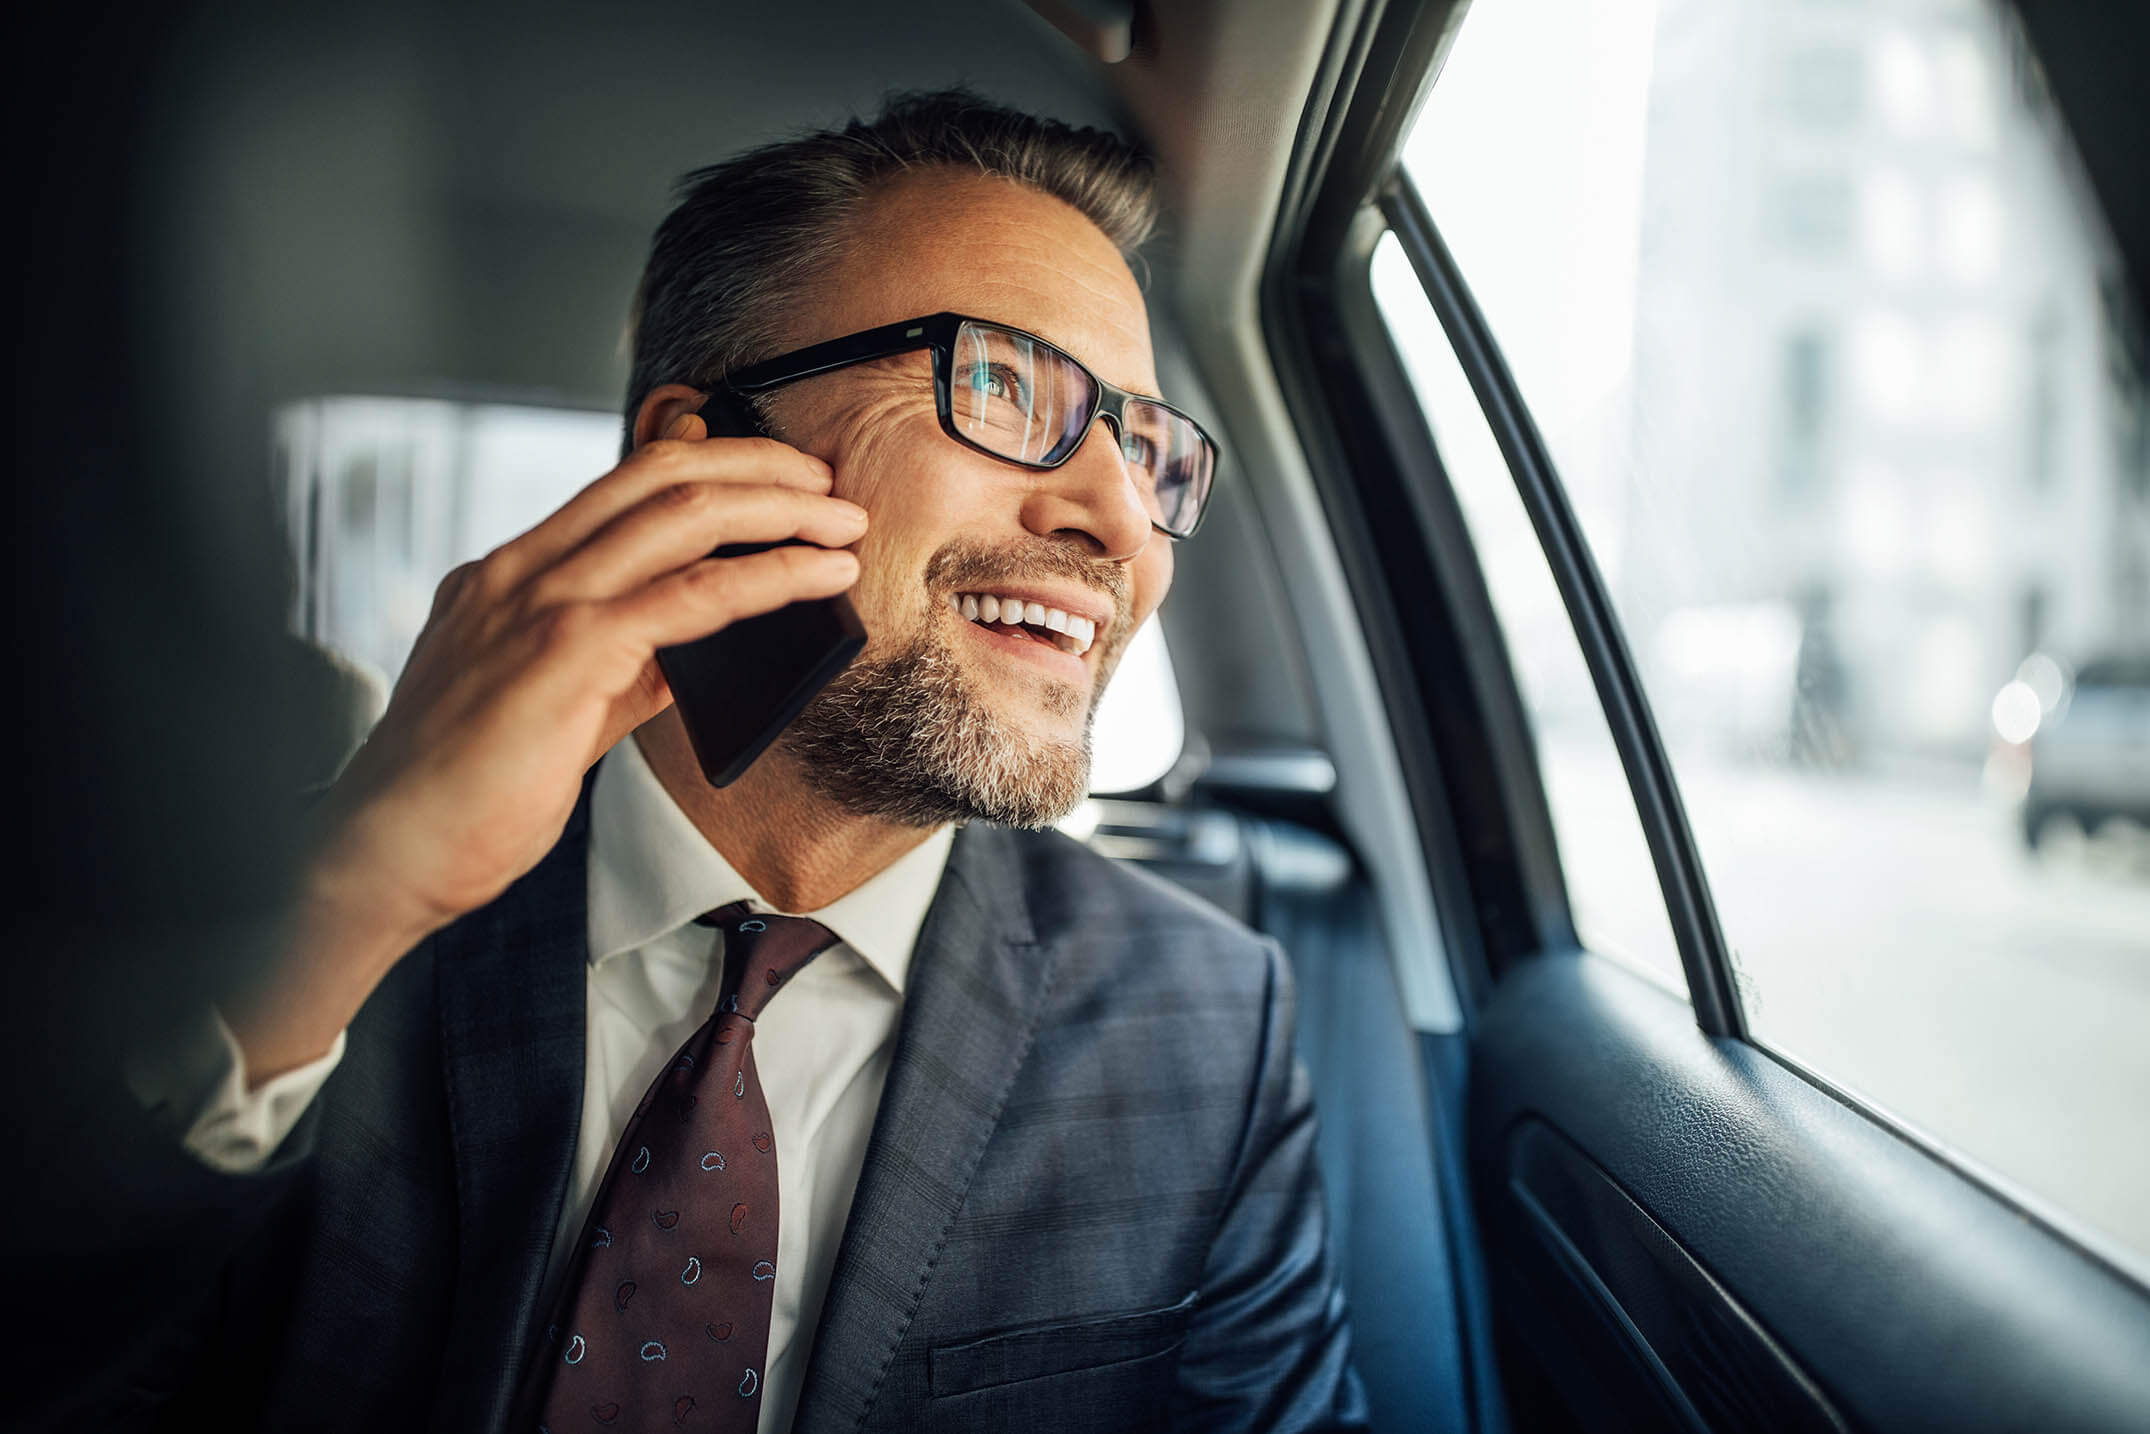 Smiling businessman on cell phone in a taxicab